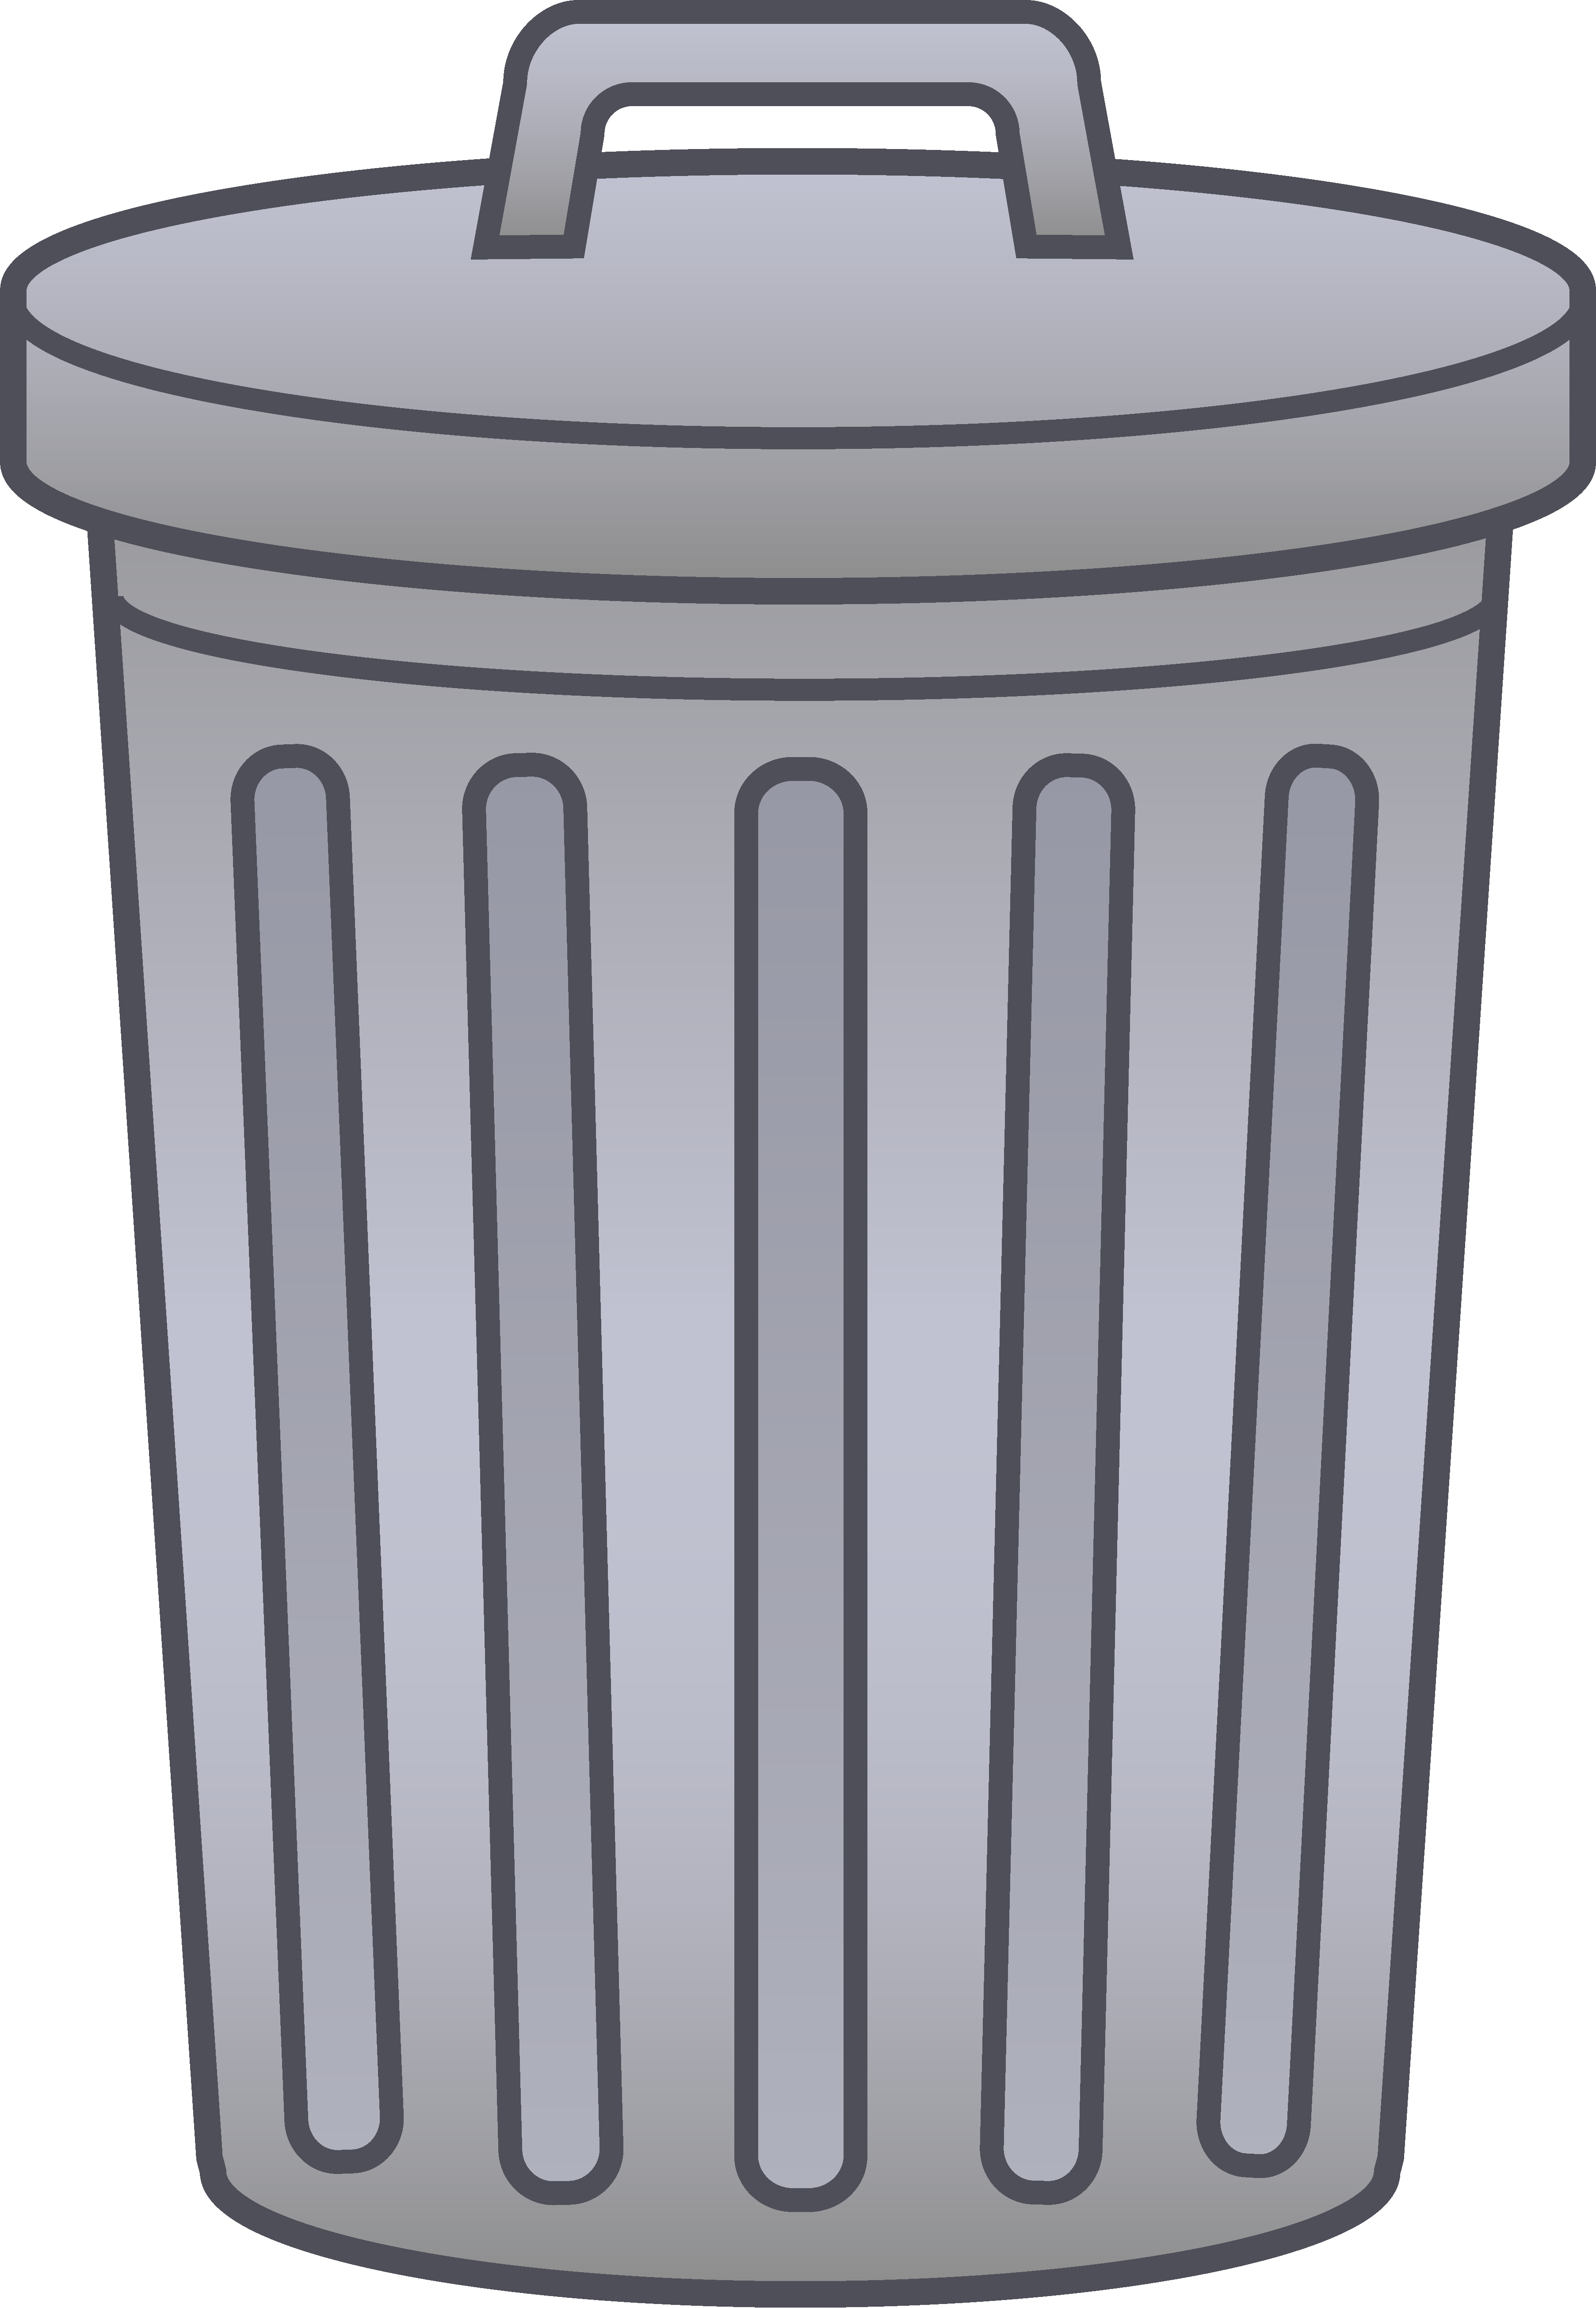 image royalty free download Garbage Can Clipart